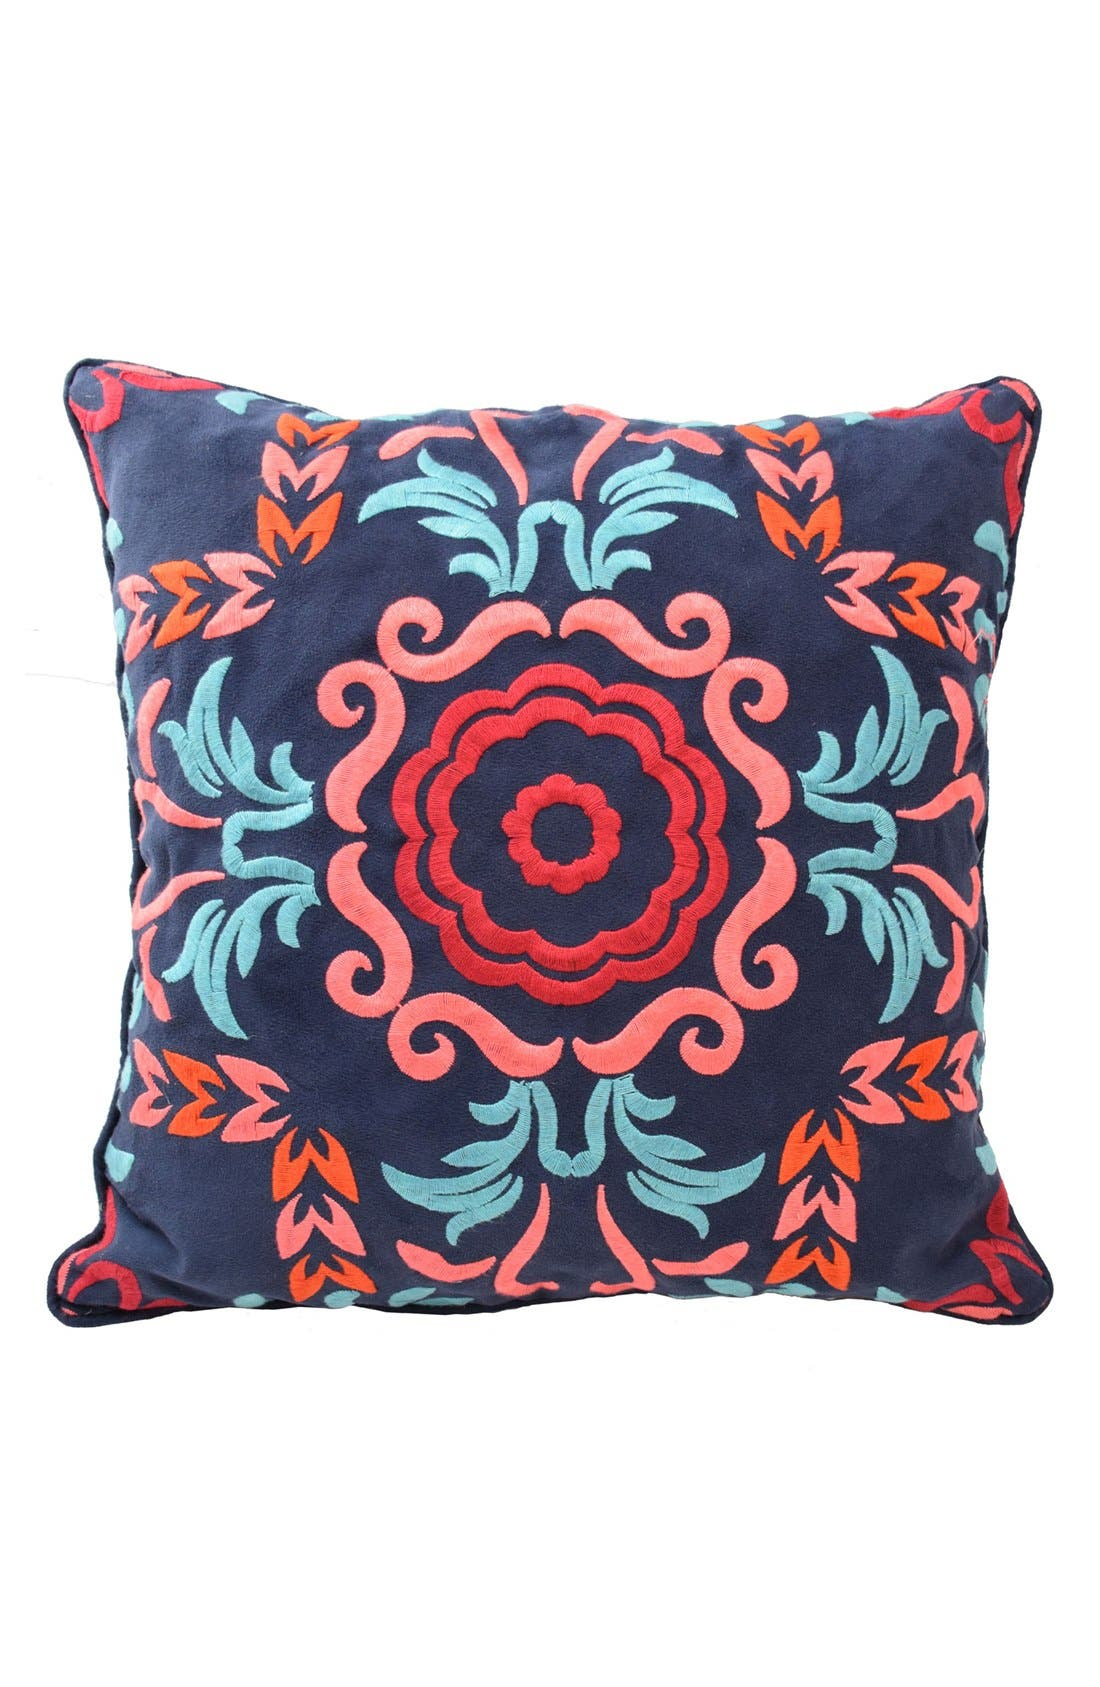 'Viva Mexico' Pillow,                         Main,                         color, Navy Multi